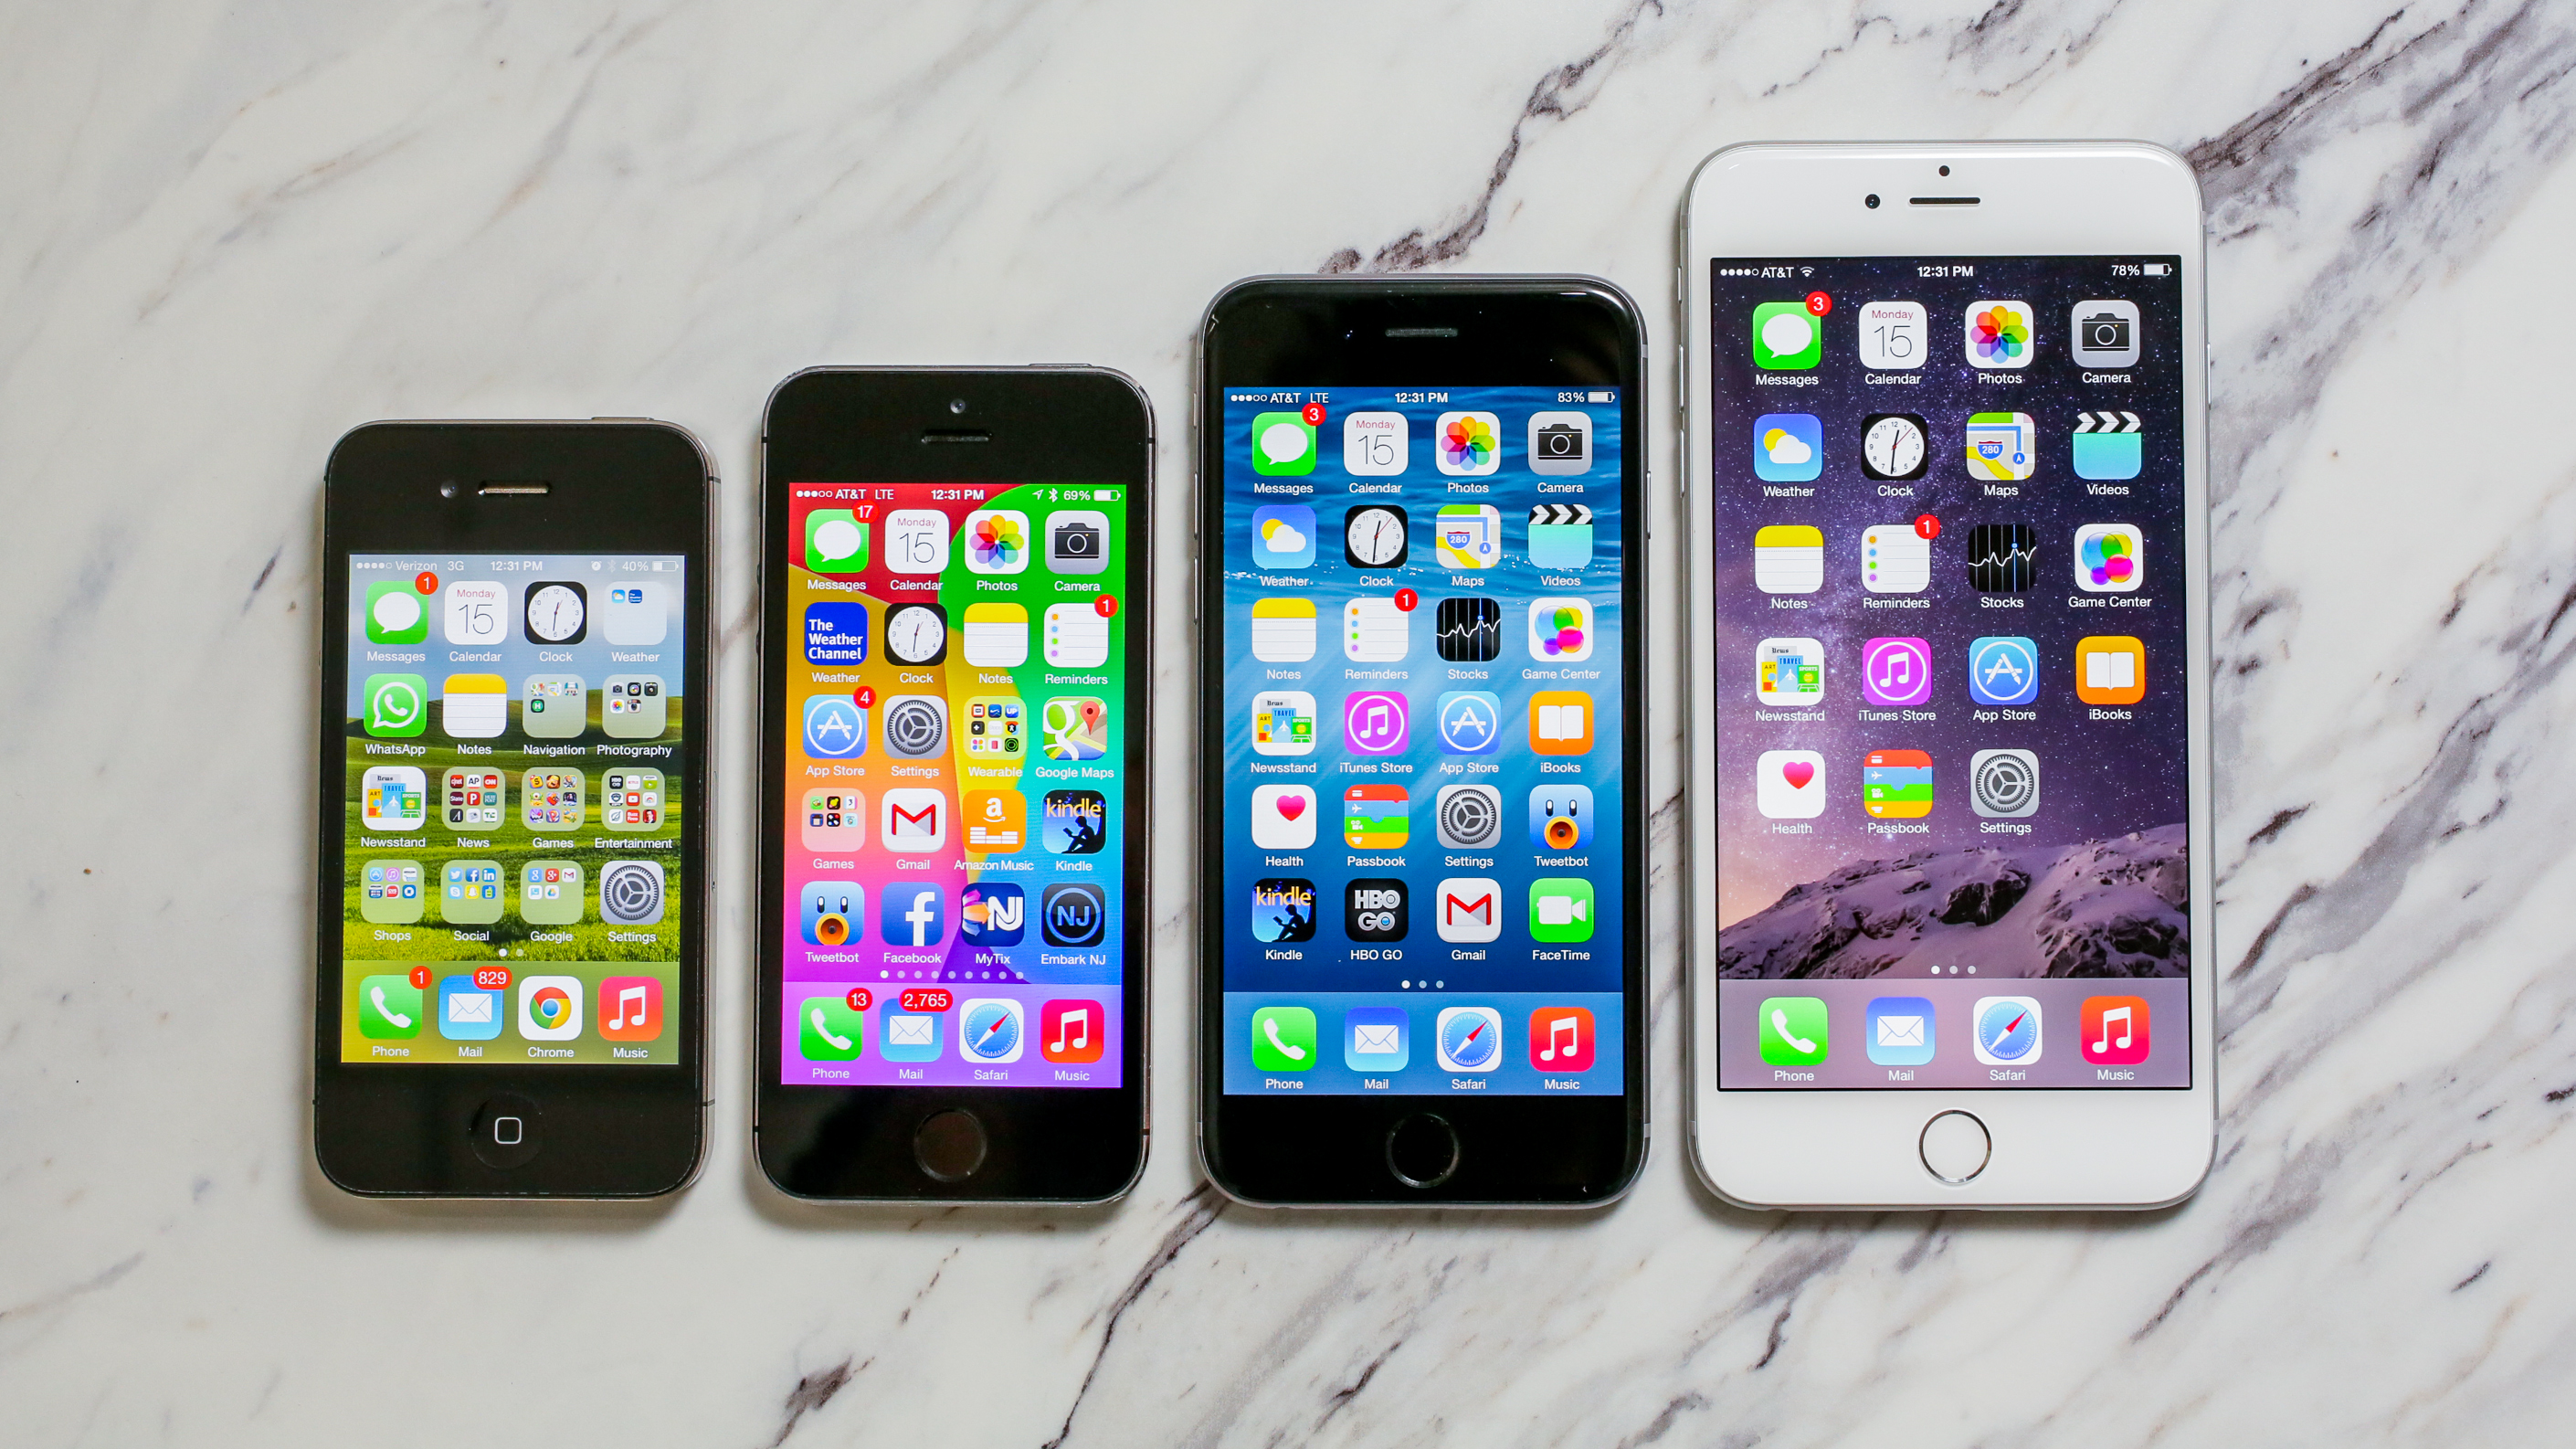 The entire iPhone family